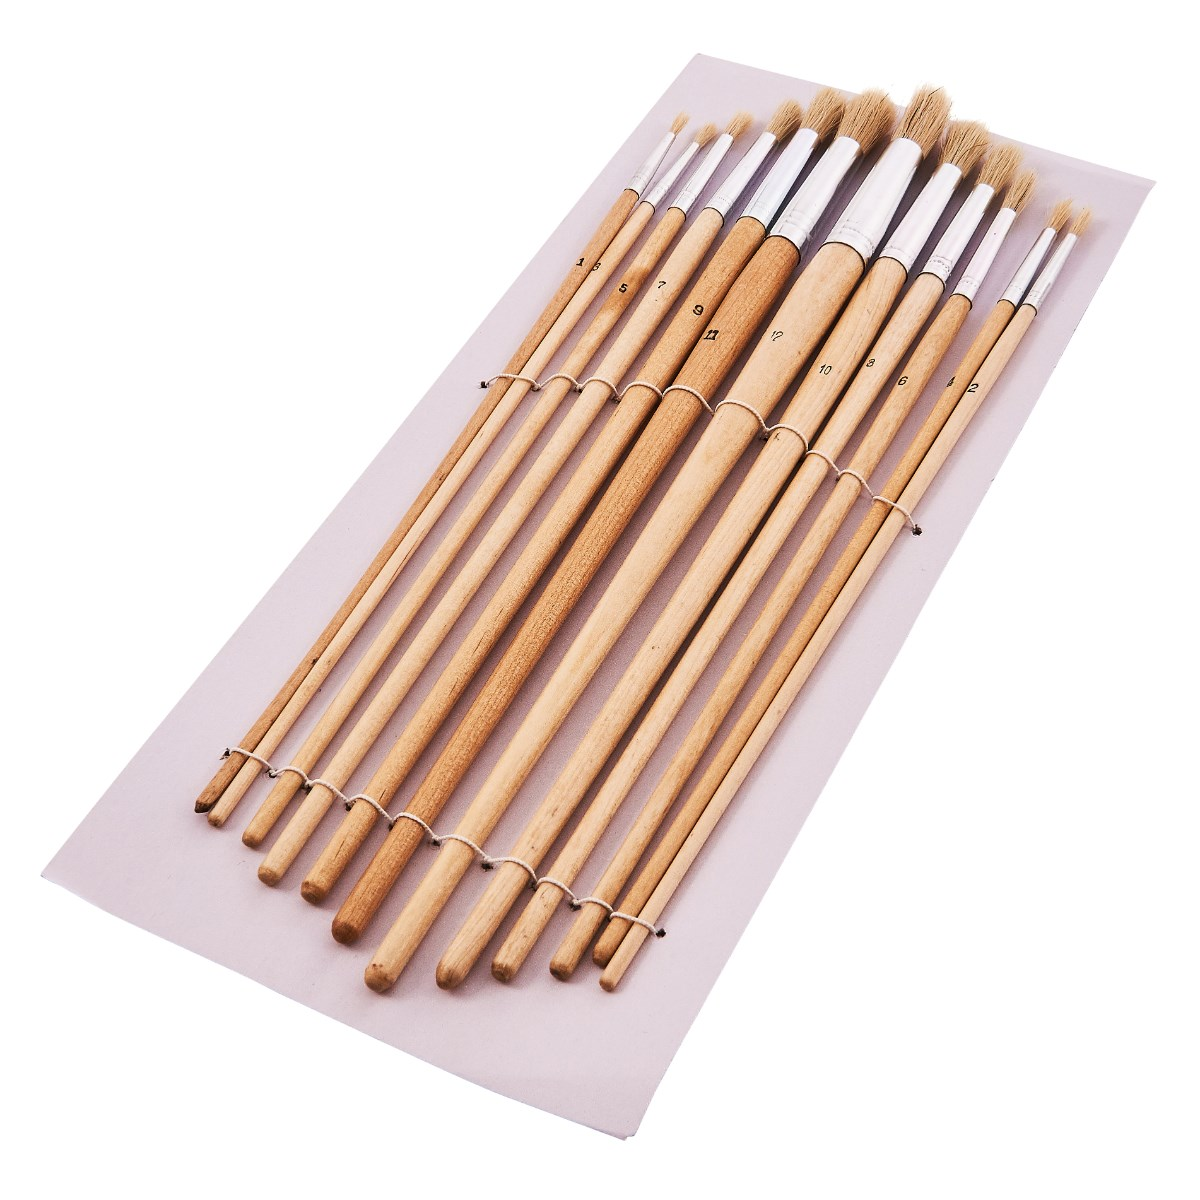 12pc Artists Paint Painting Brush Set Round Heads